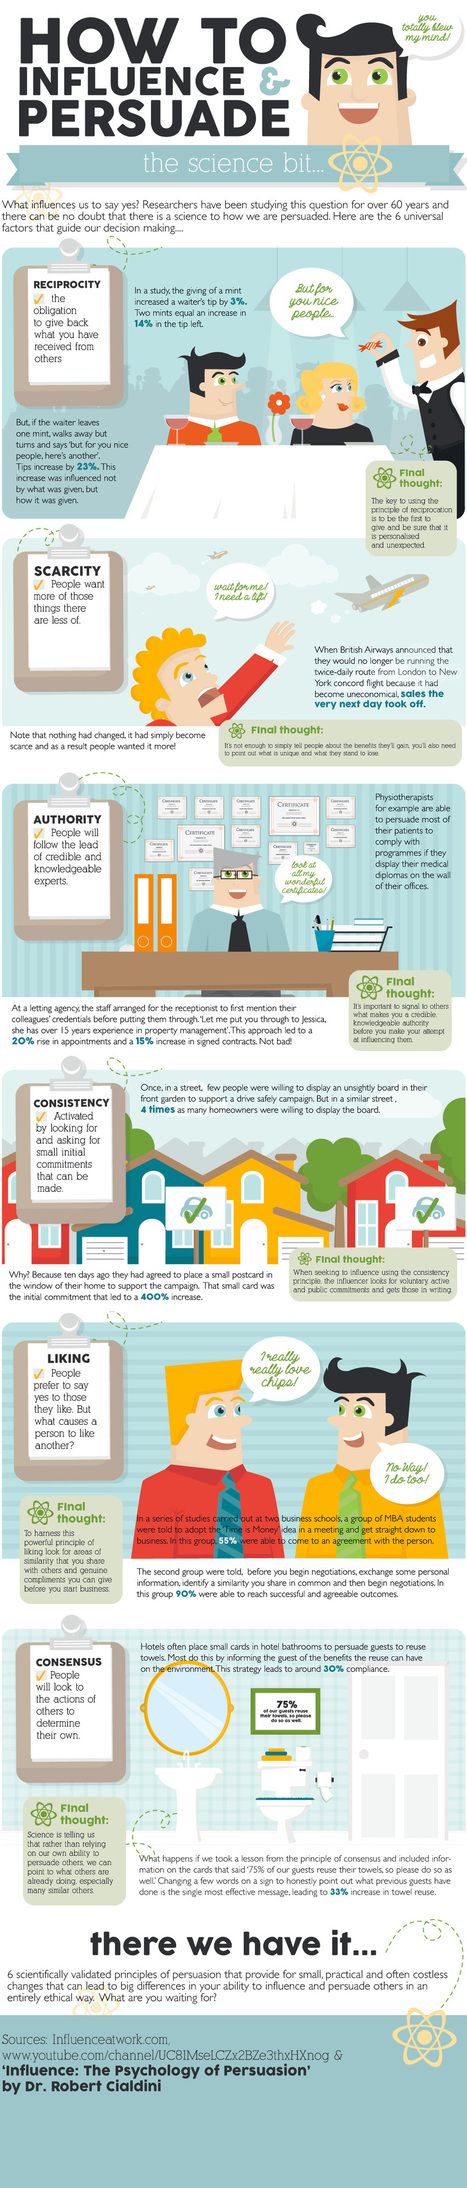 How to Influence and Persuade - The Science Bit [Infographic] | Leadership Communication | Scoop.it